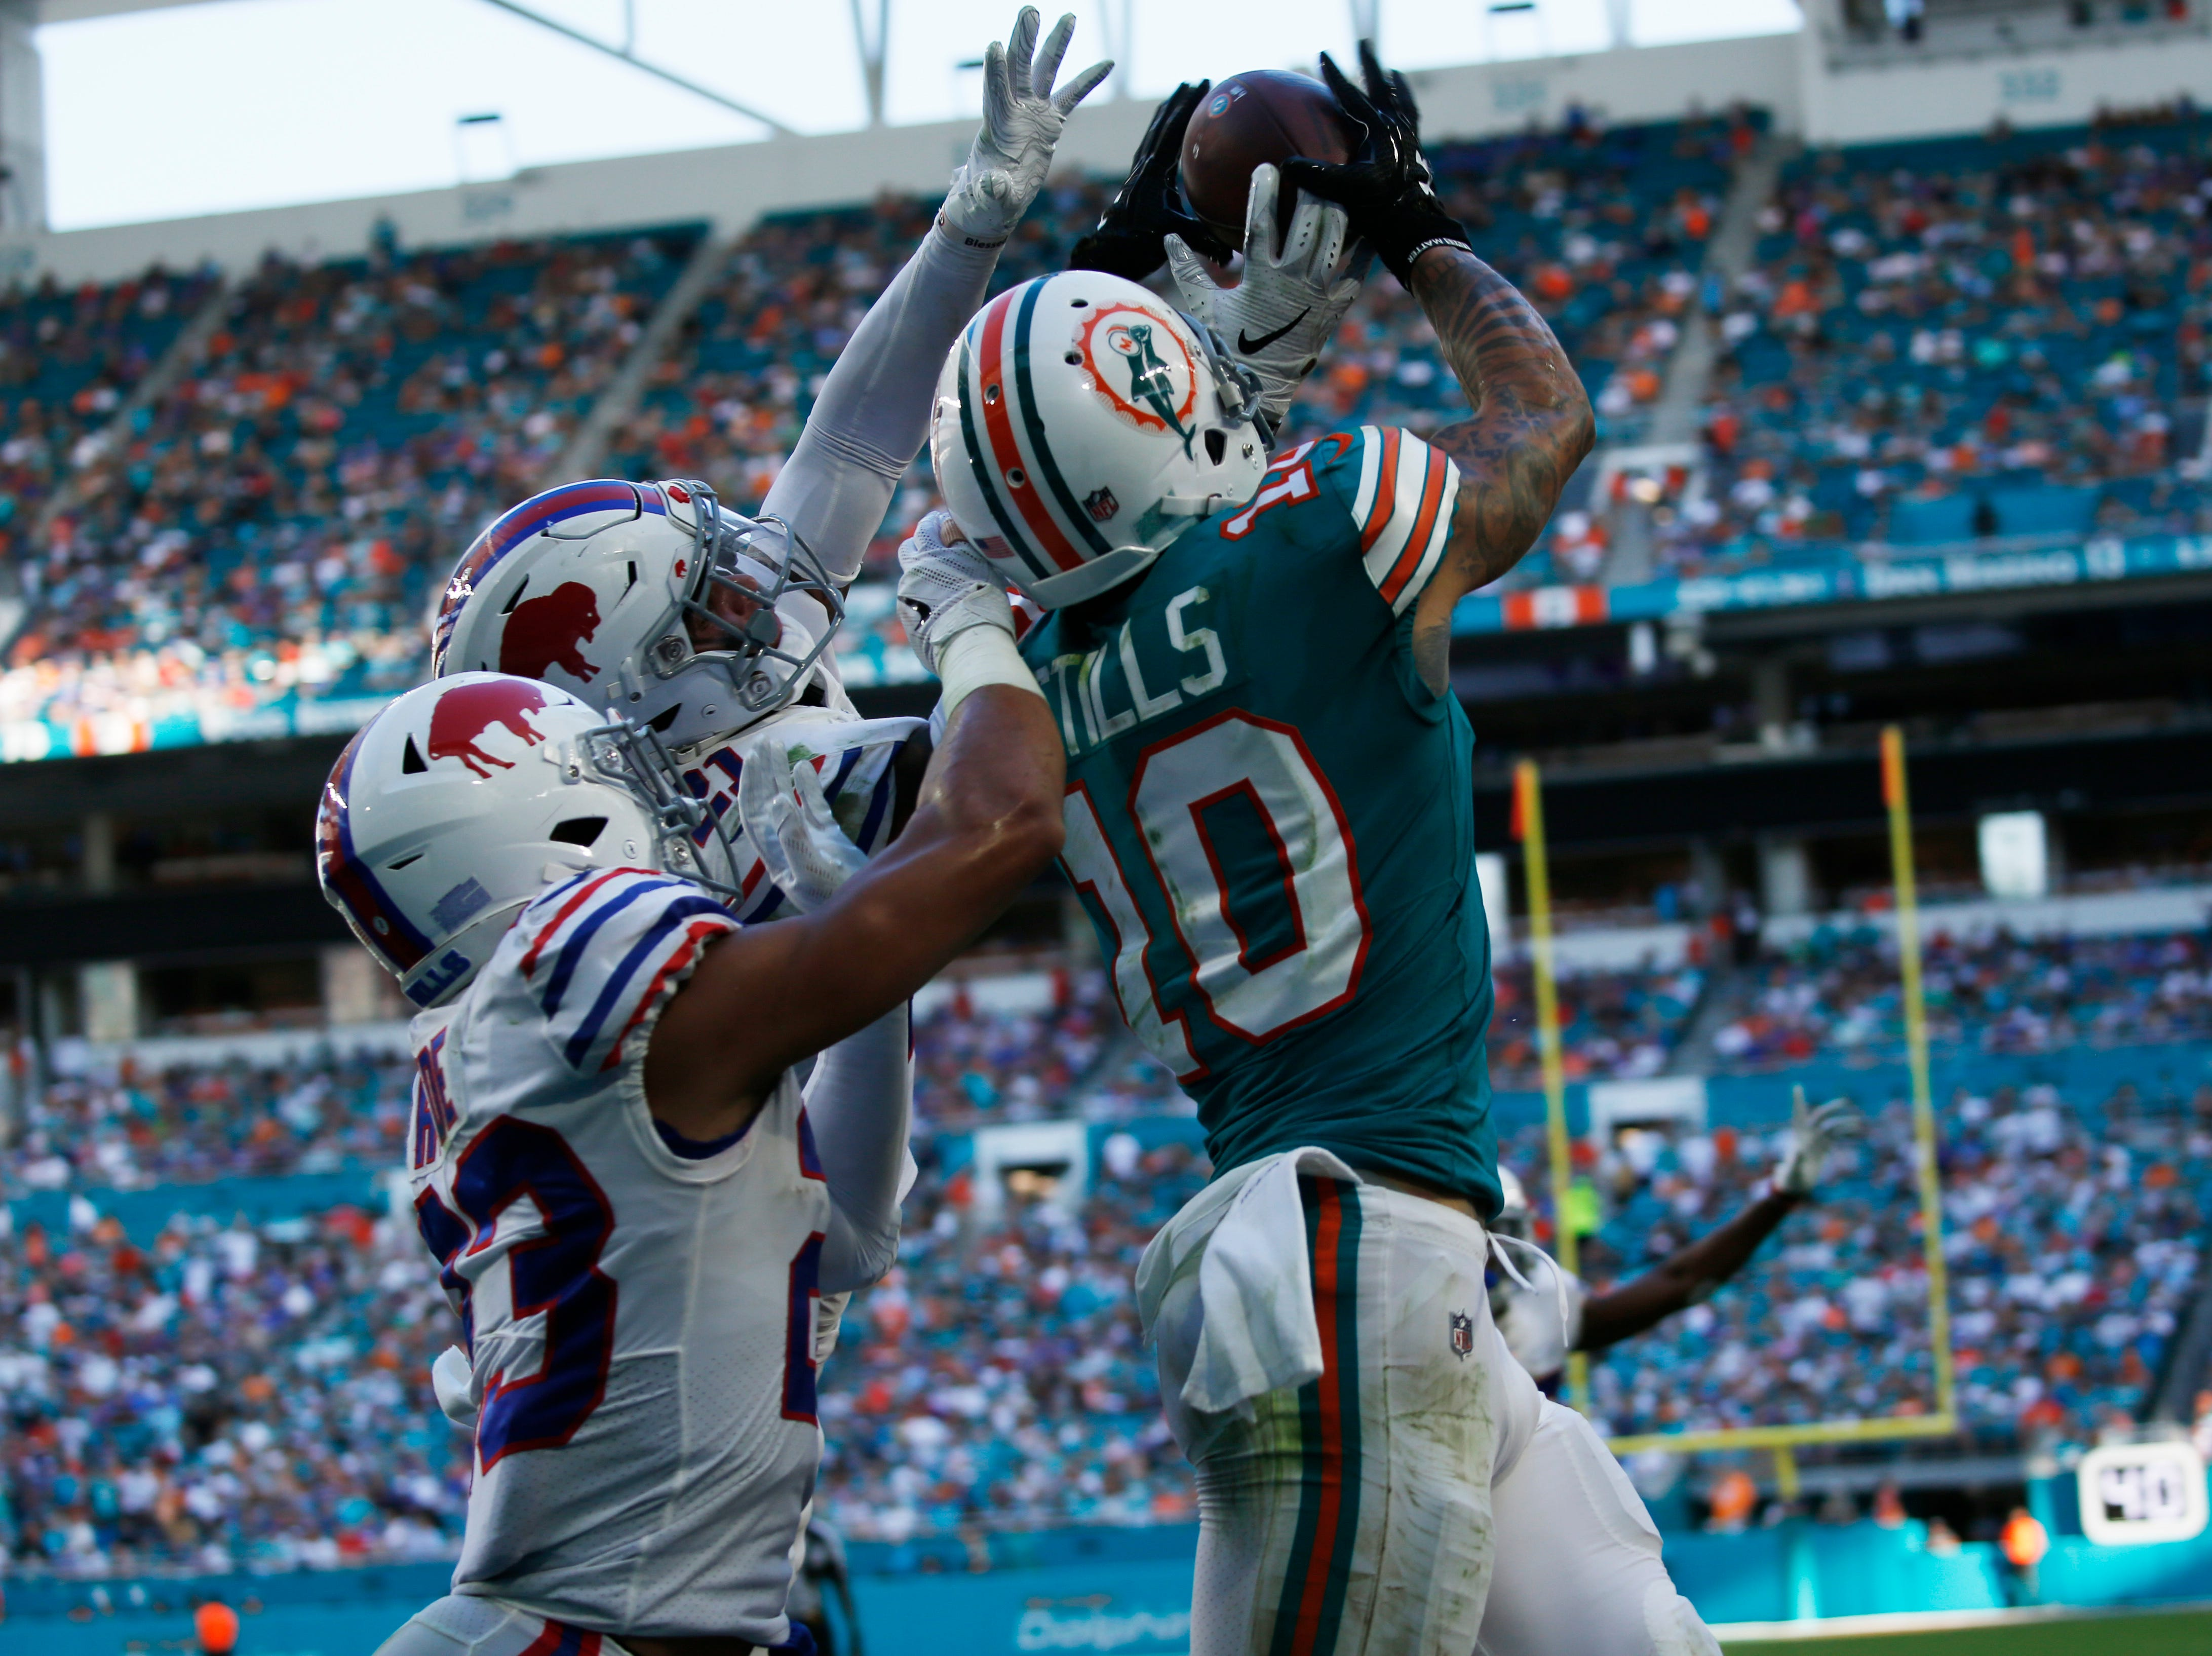 Miami Dolphins wide receiver Kenny Stills (10), catches a touchdown as Buffalo Bills free safety Jordan Poyer (21) and strong safety Micah Hyde (23) defend, during the second half of an NFL football game, Sunday, Dec. 2, 2018, in Miami Gardens, Fla. (AP Photo/Joel Auerbach)